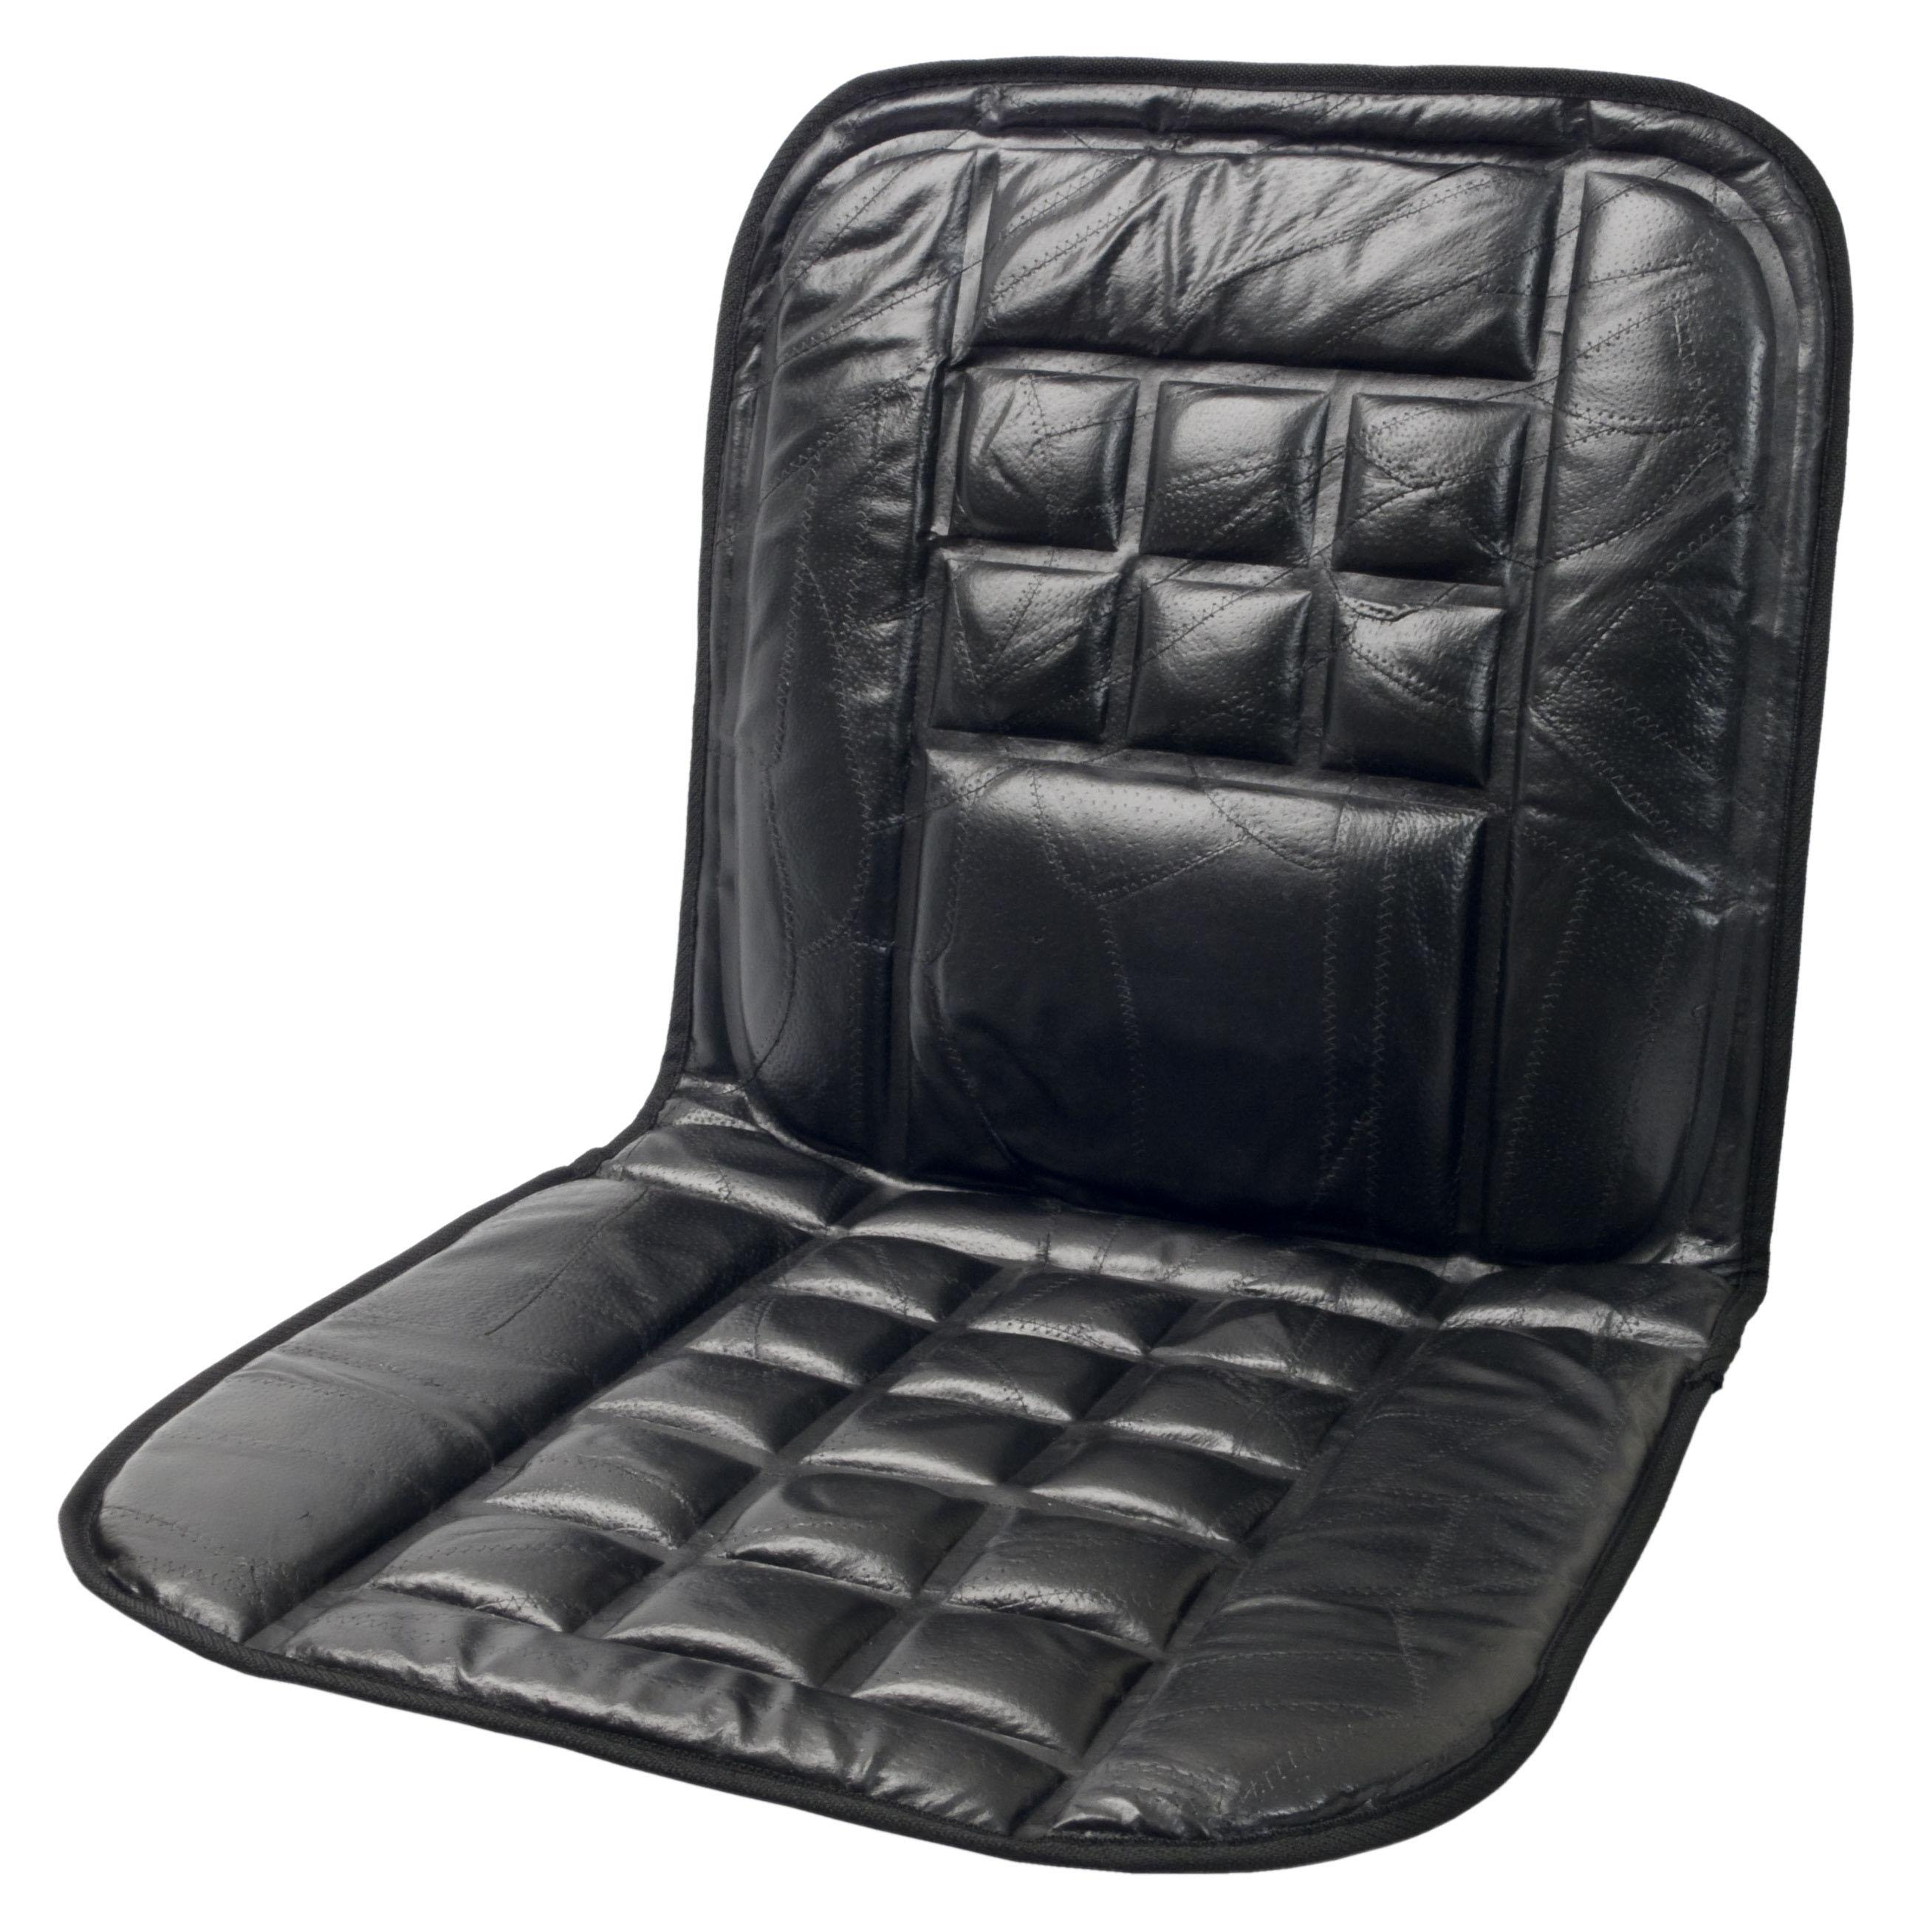 amazon com wagan in9615 leather lumbar support cushion automotive